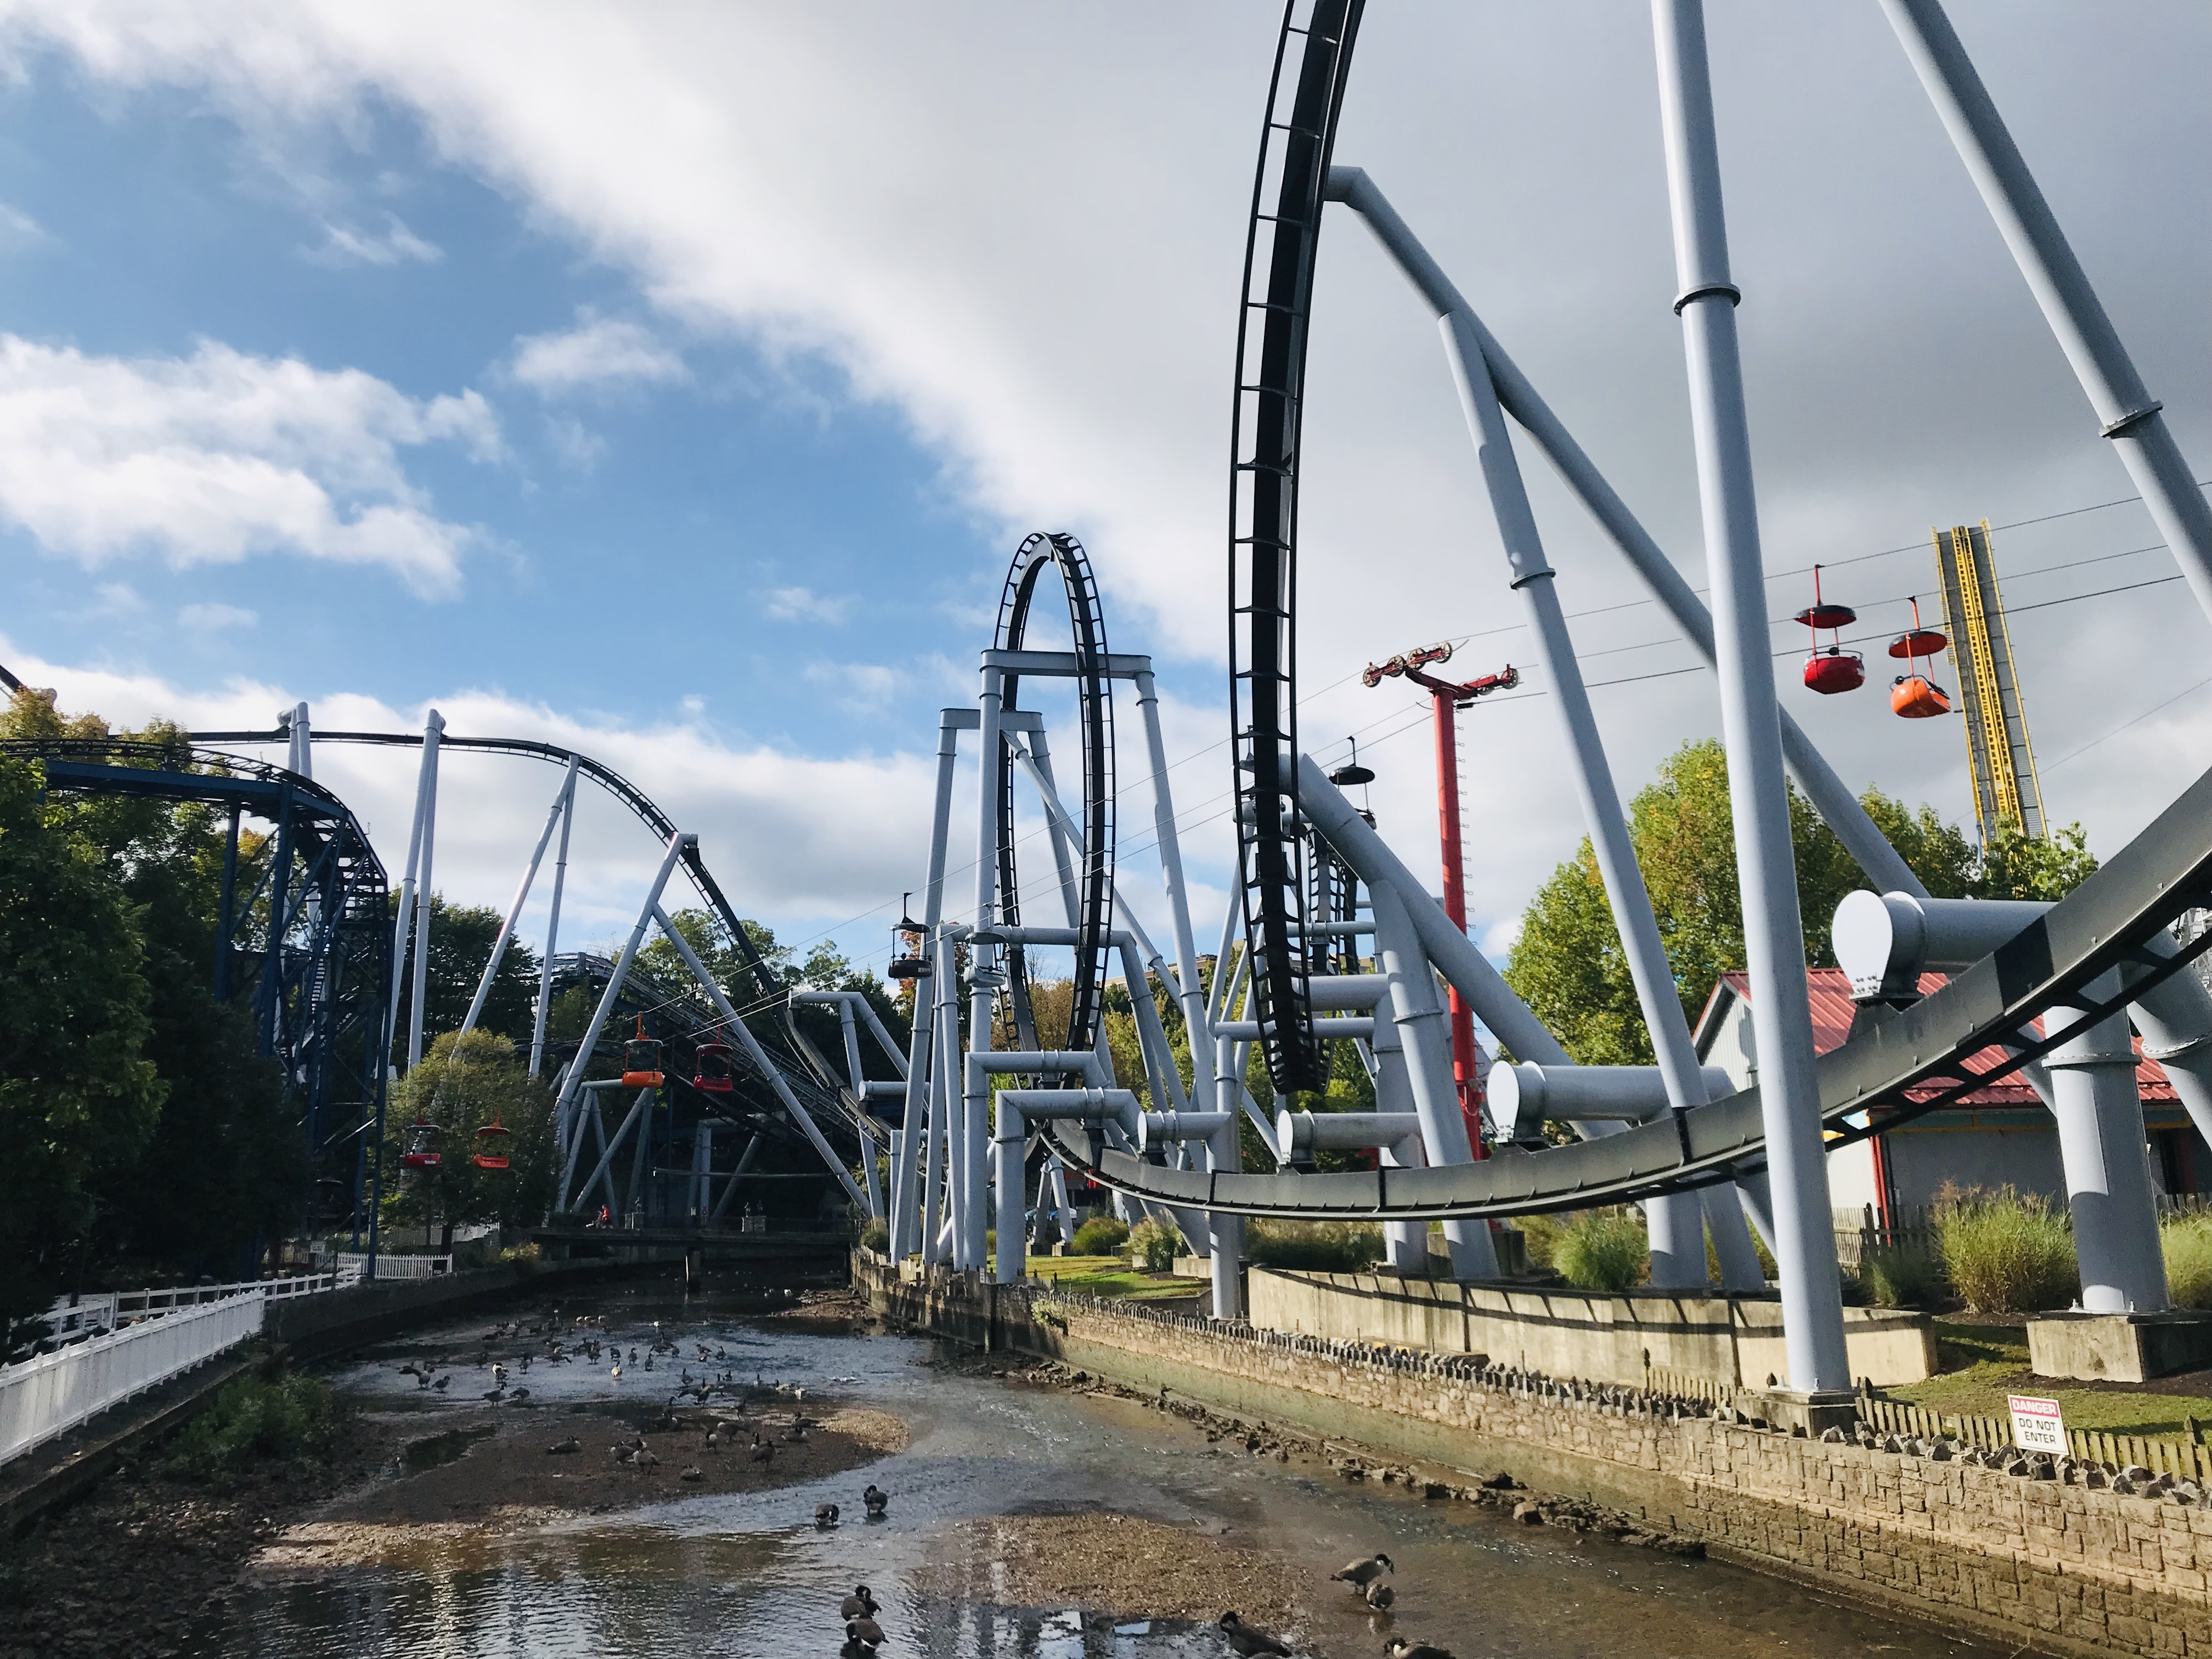 Roller coasters are operating during Halloween at Hersheypark.